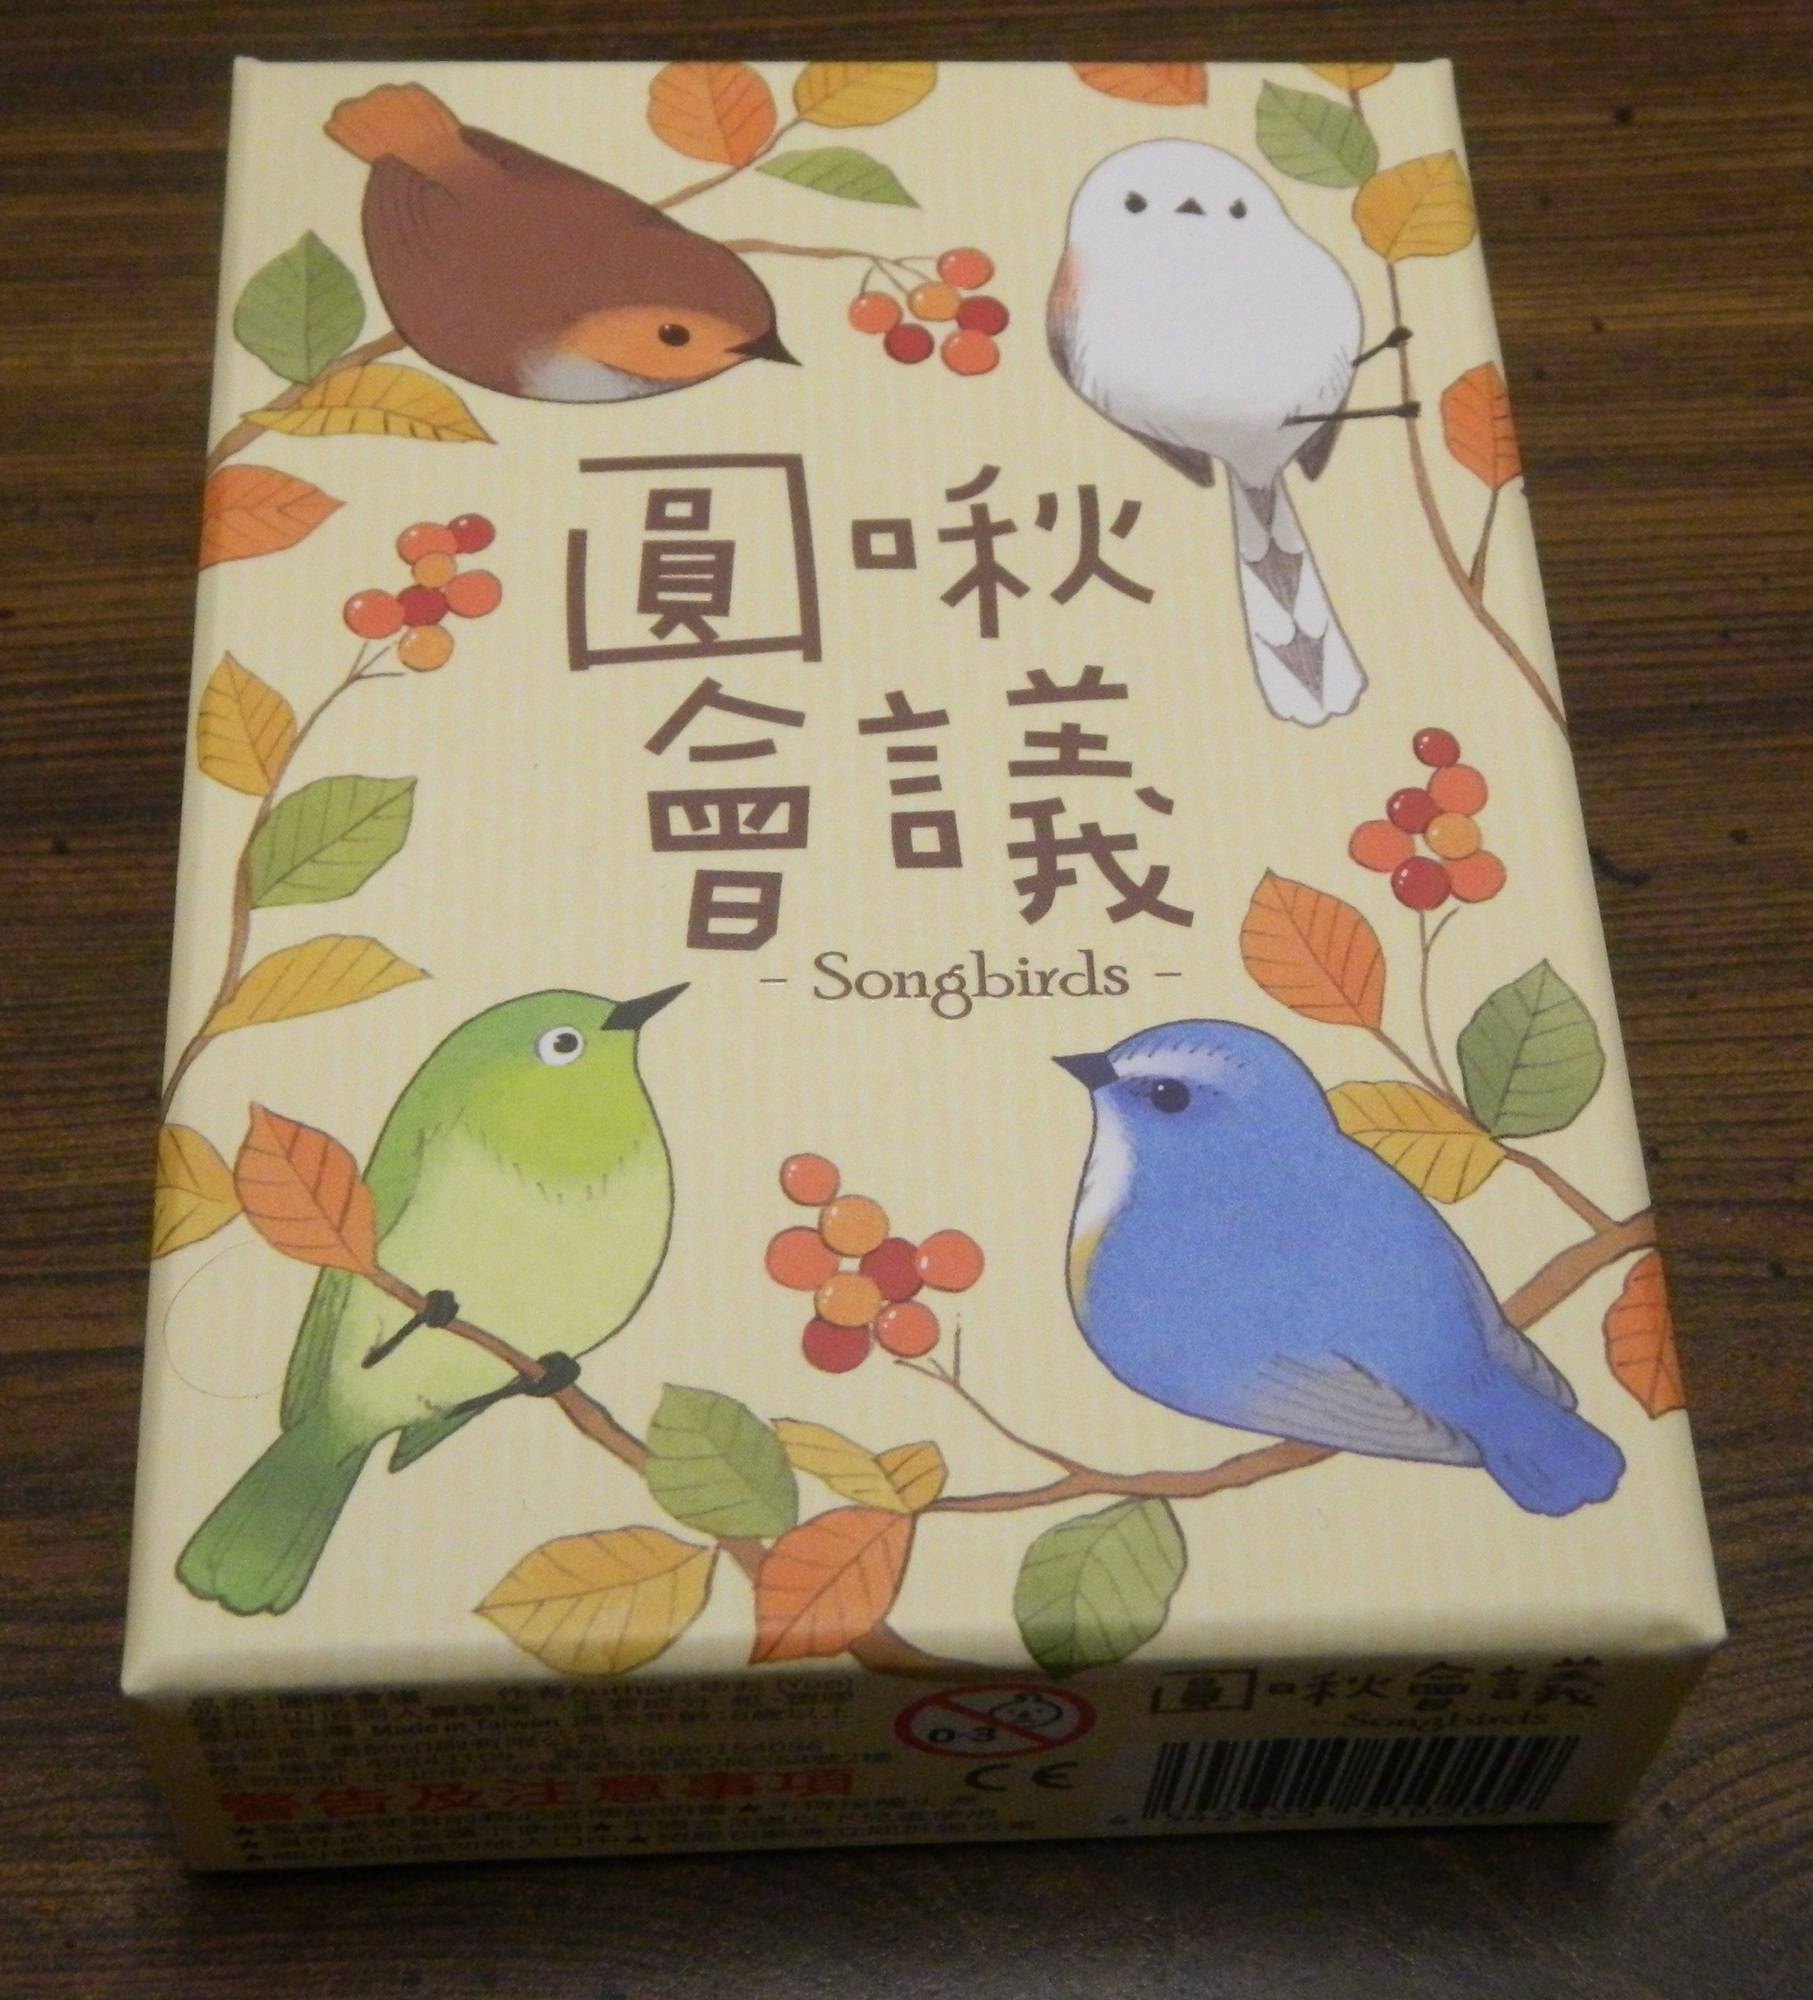 Box for Songbirds